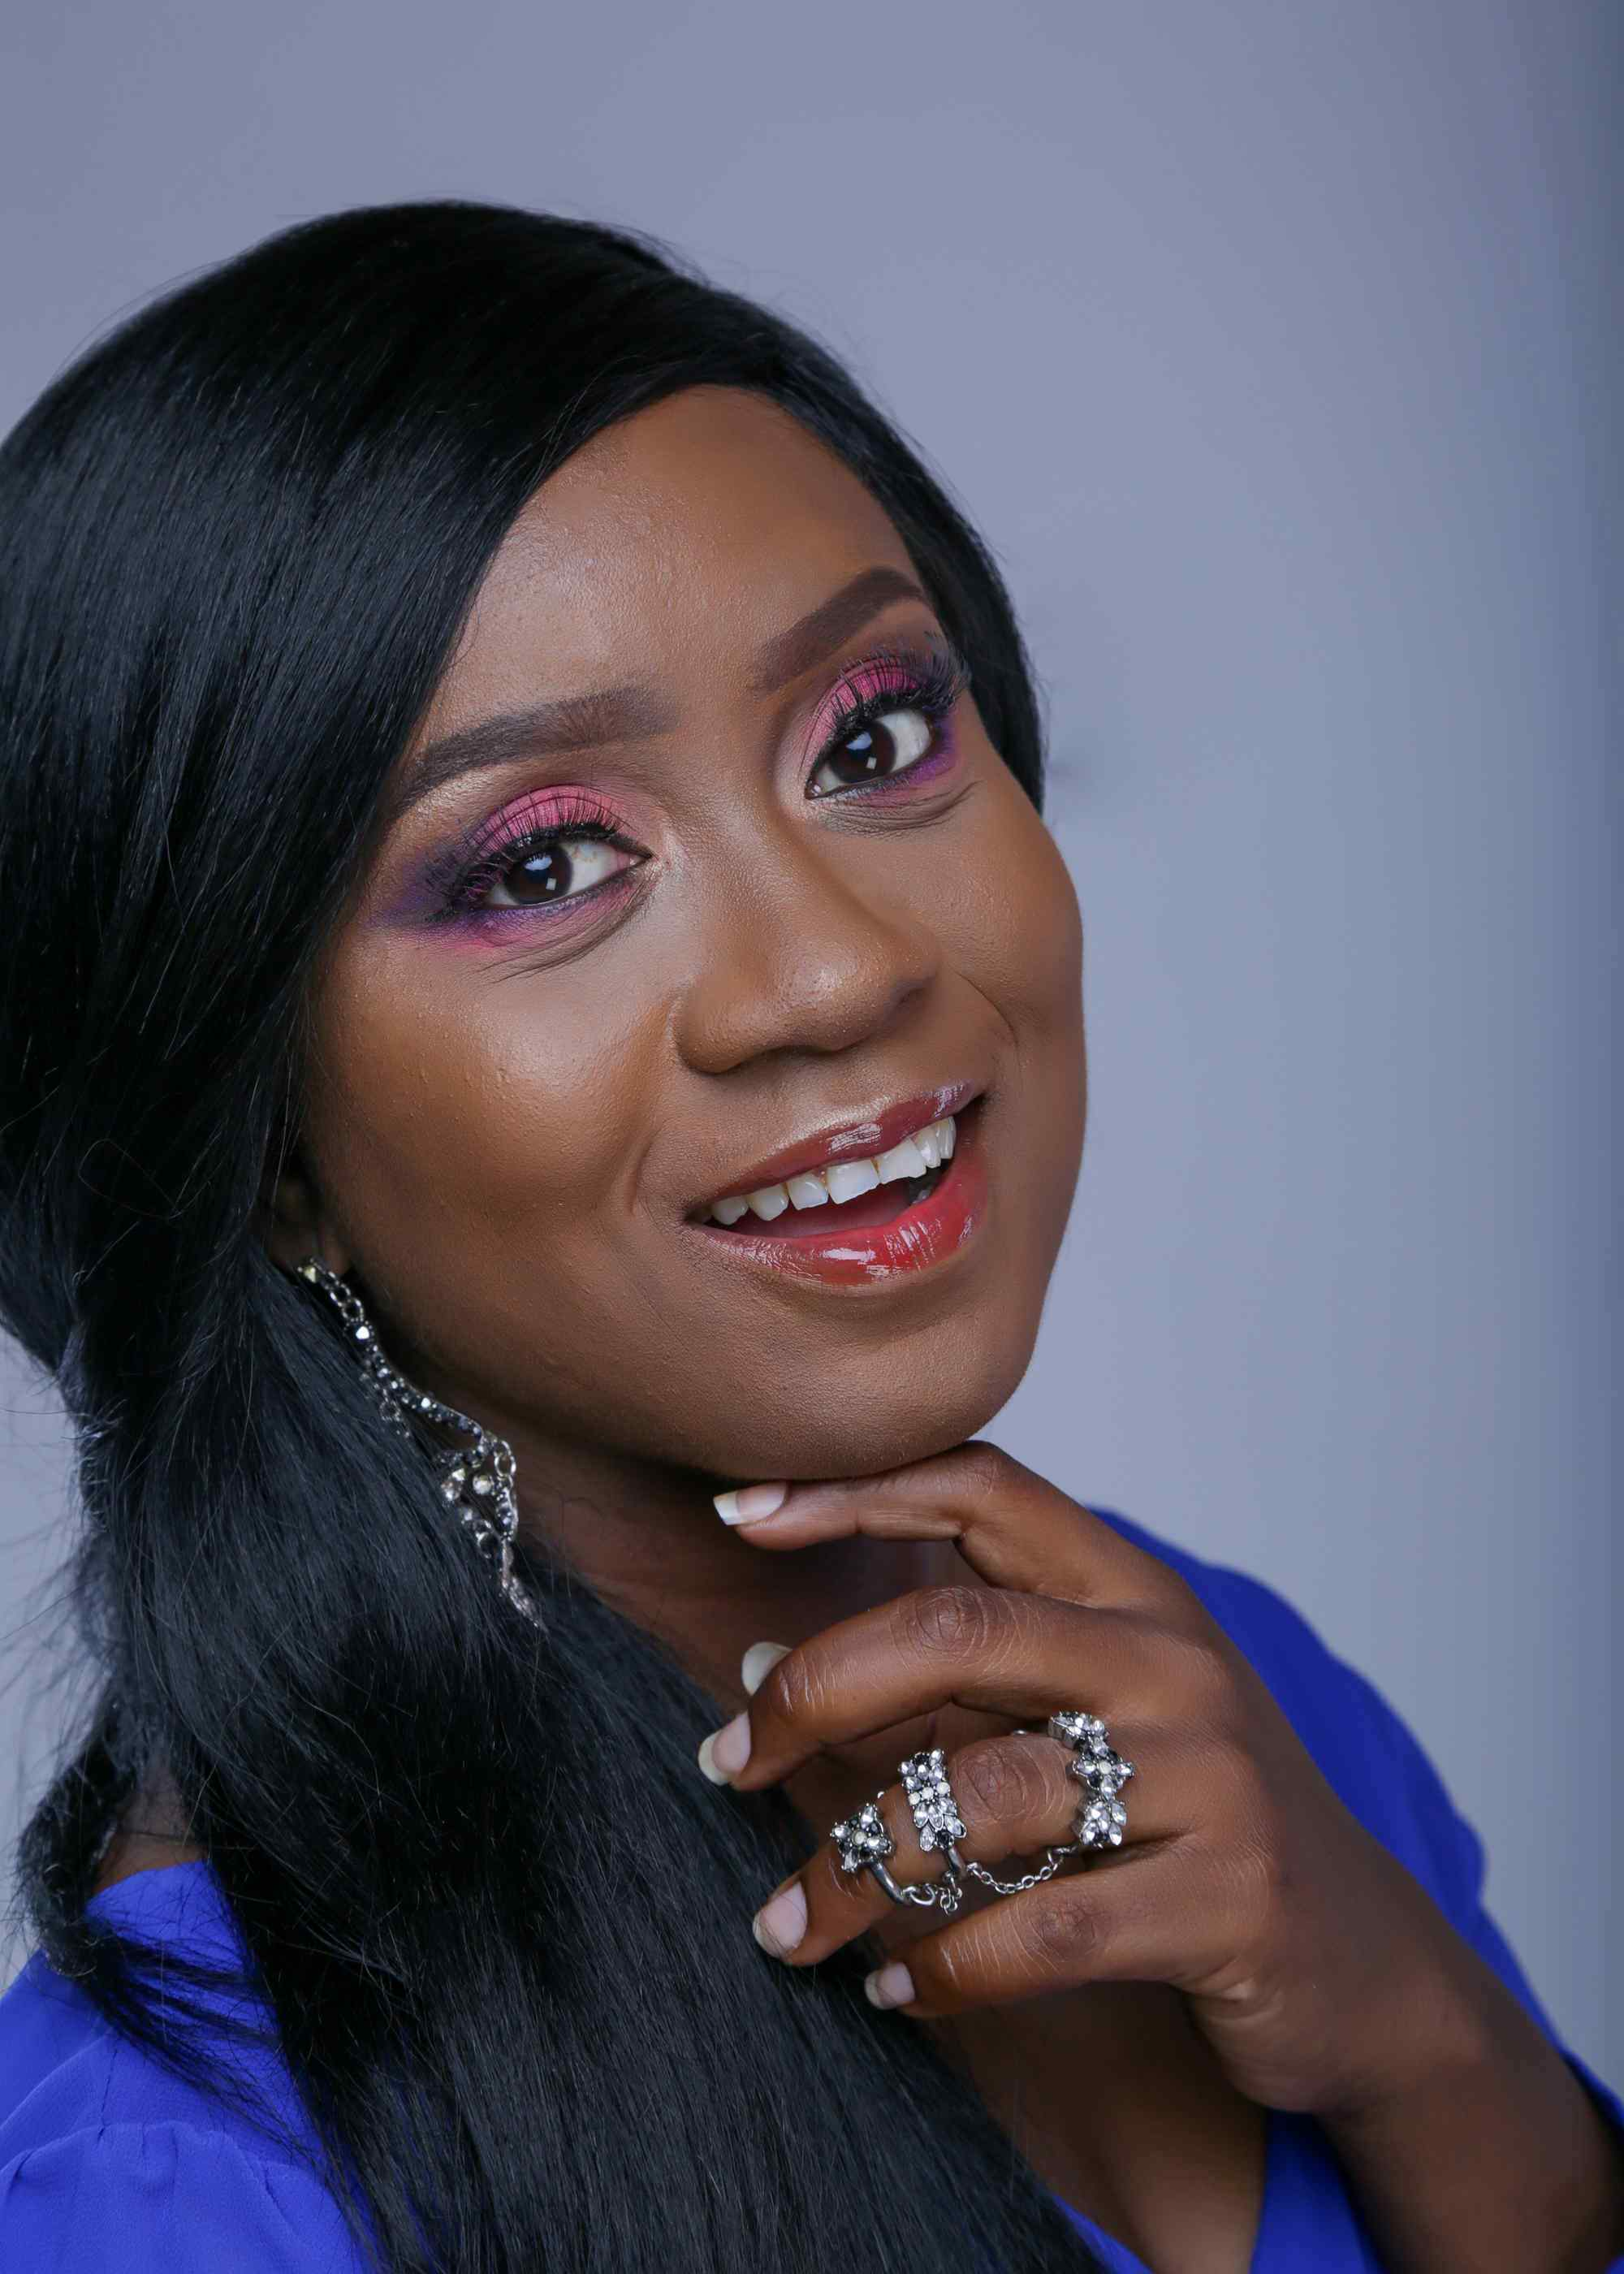 3 for 1! Check out Nikki Laoye's stunning New Looks ?